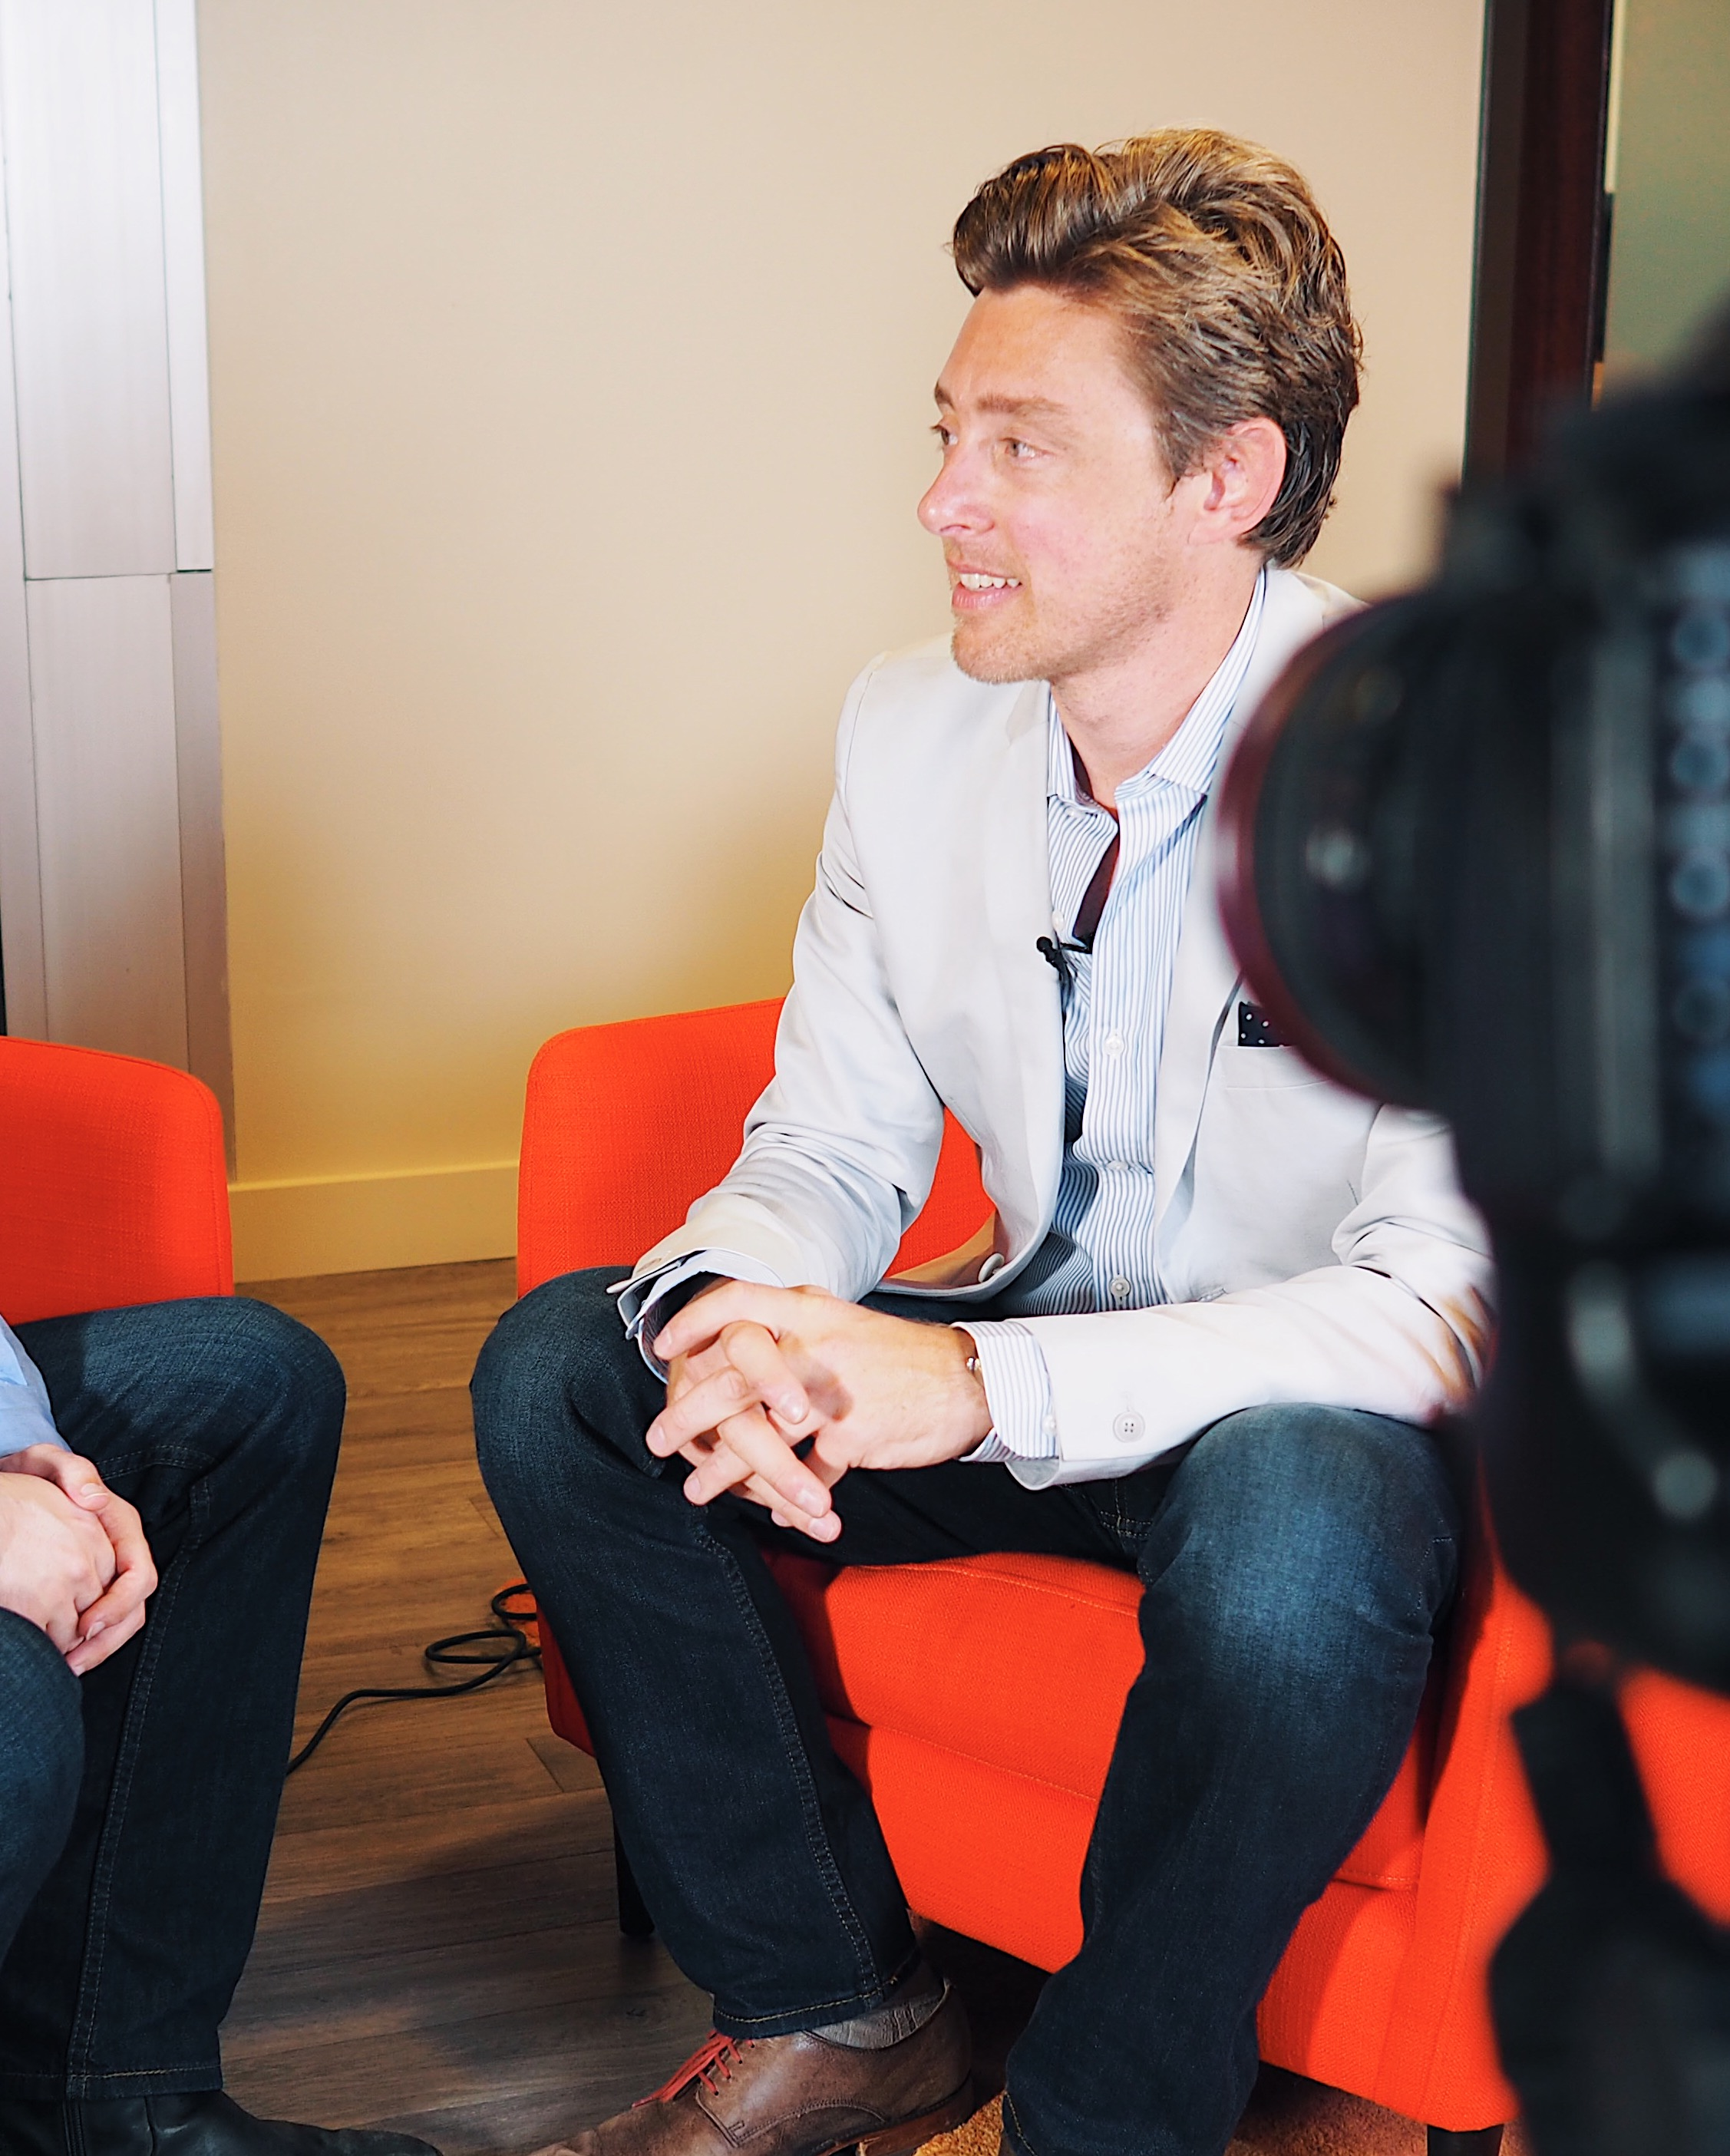 My getting interviewed photo.  Download